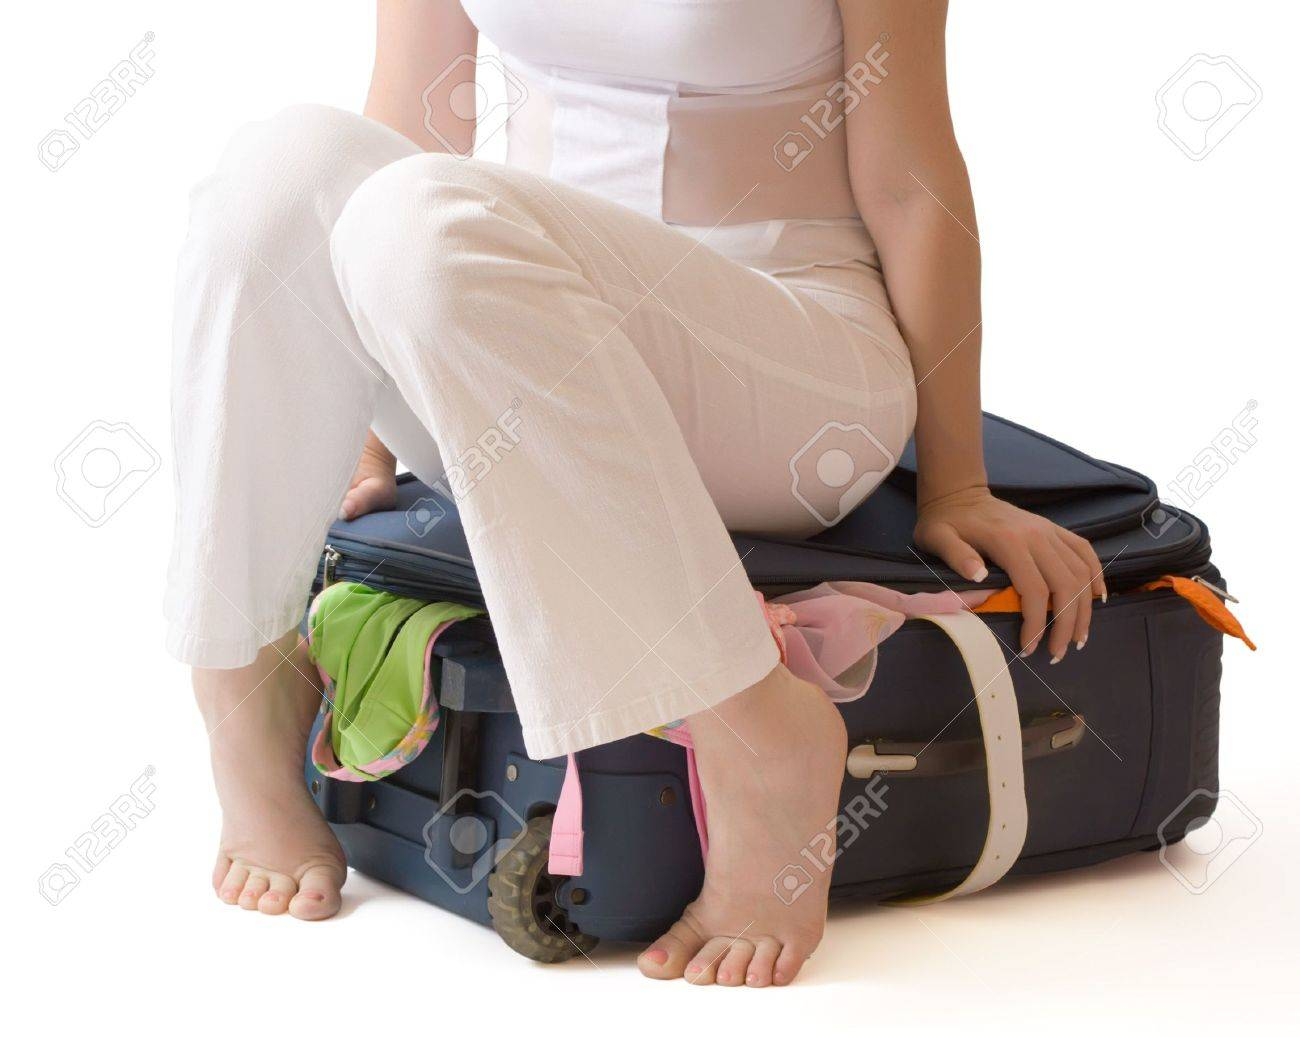 Barefooted woman sitting on a suitcase crammed full of clothes, isolated, with clipping path Stock Photo - 3217400